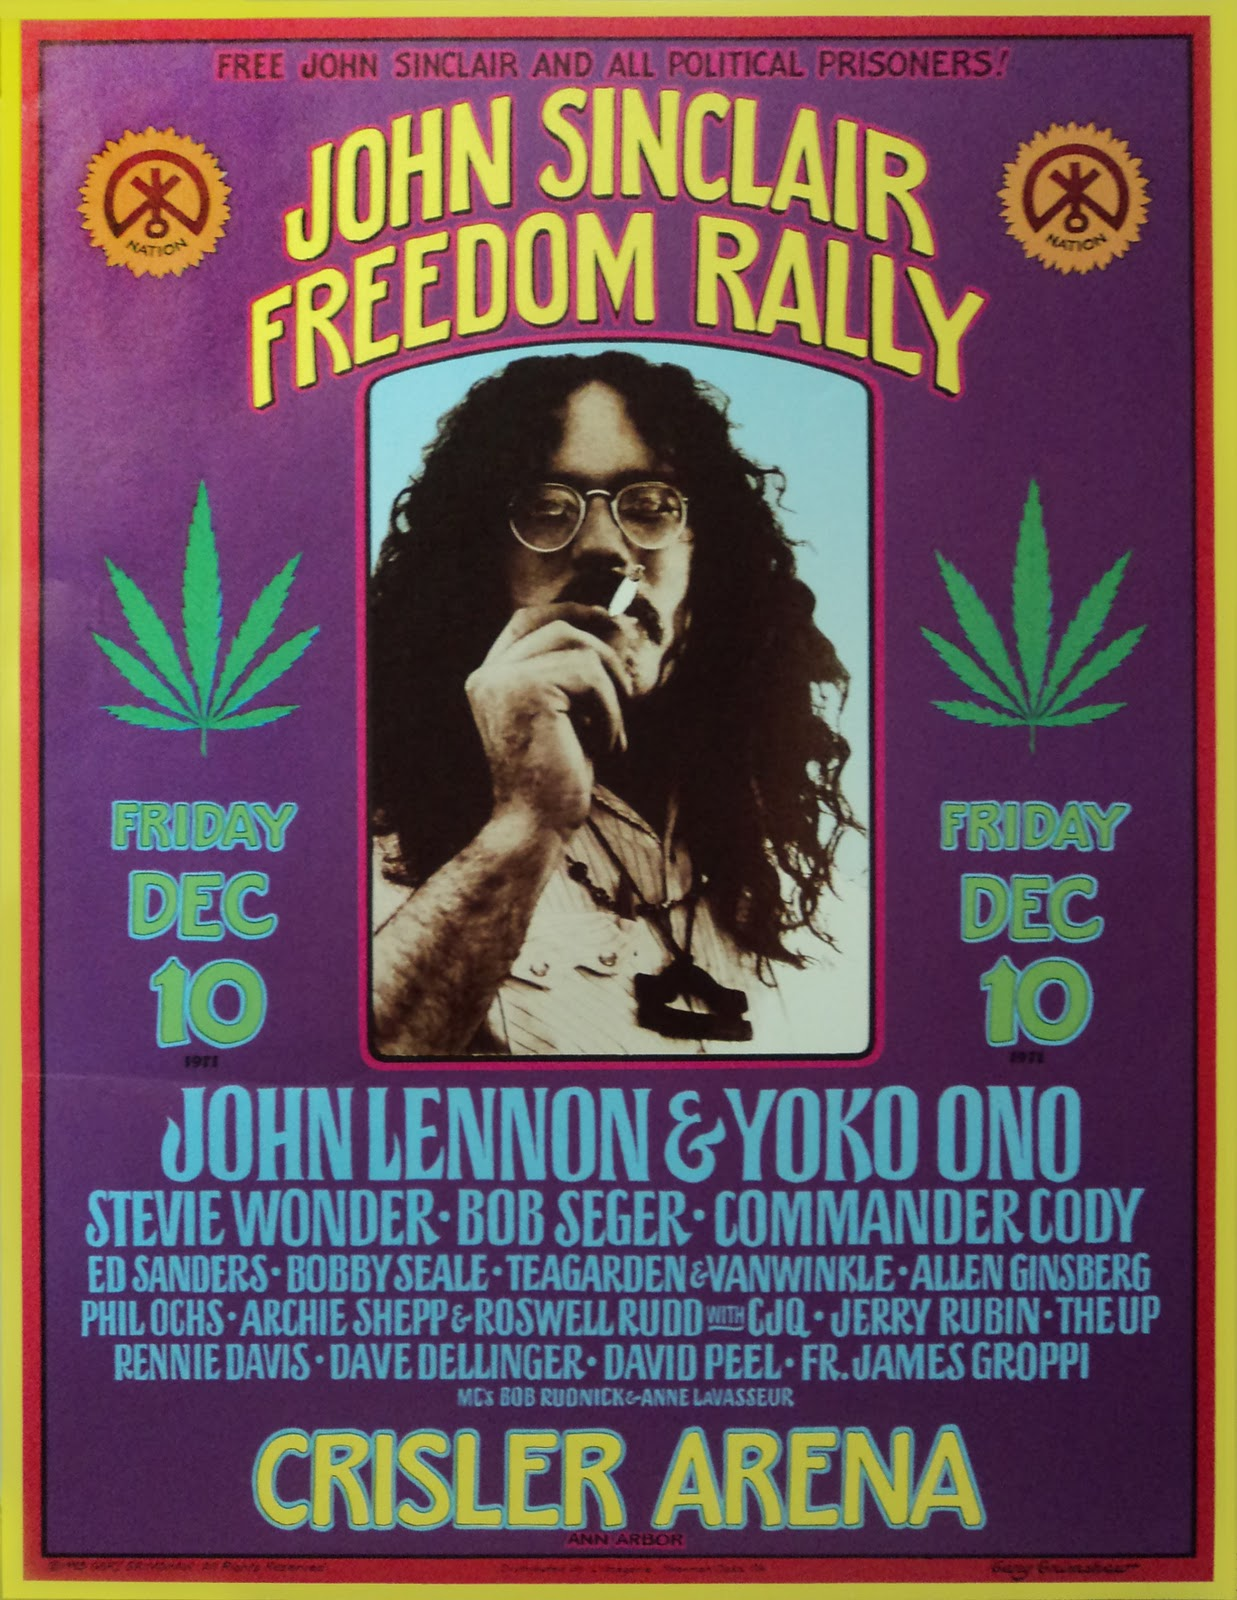 Póster evento John Sinclair Freedom Rally